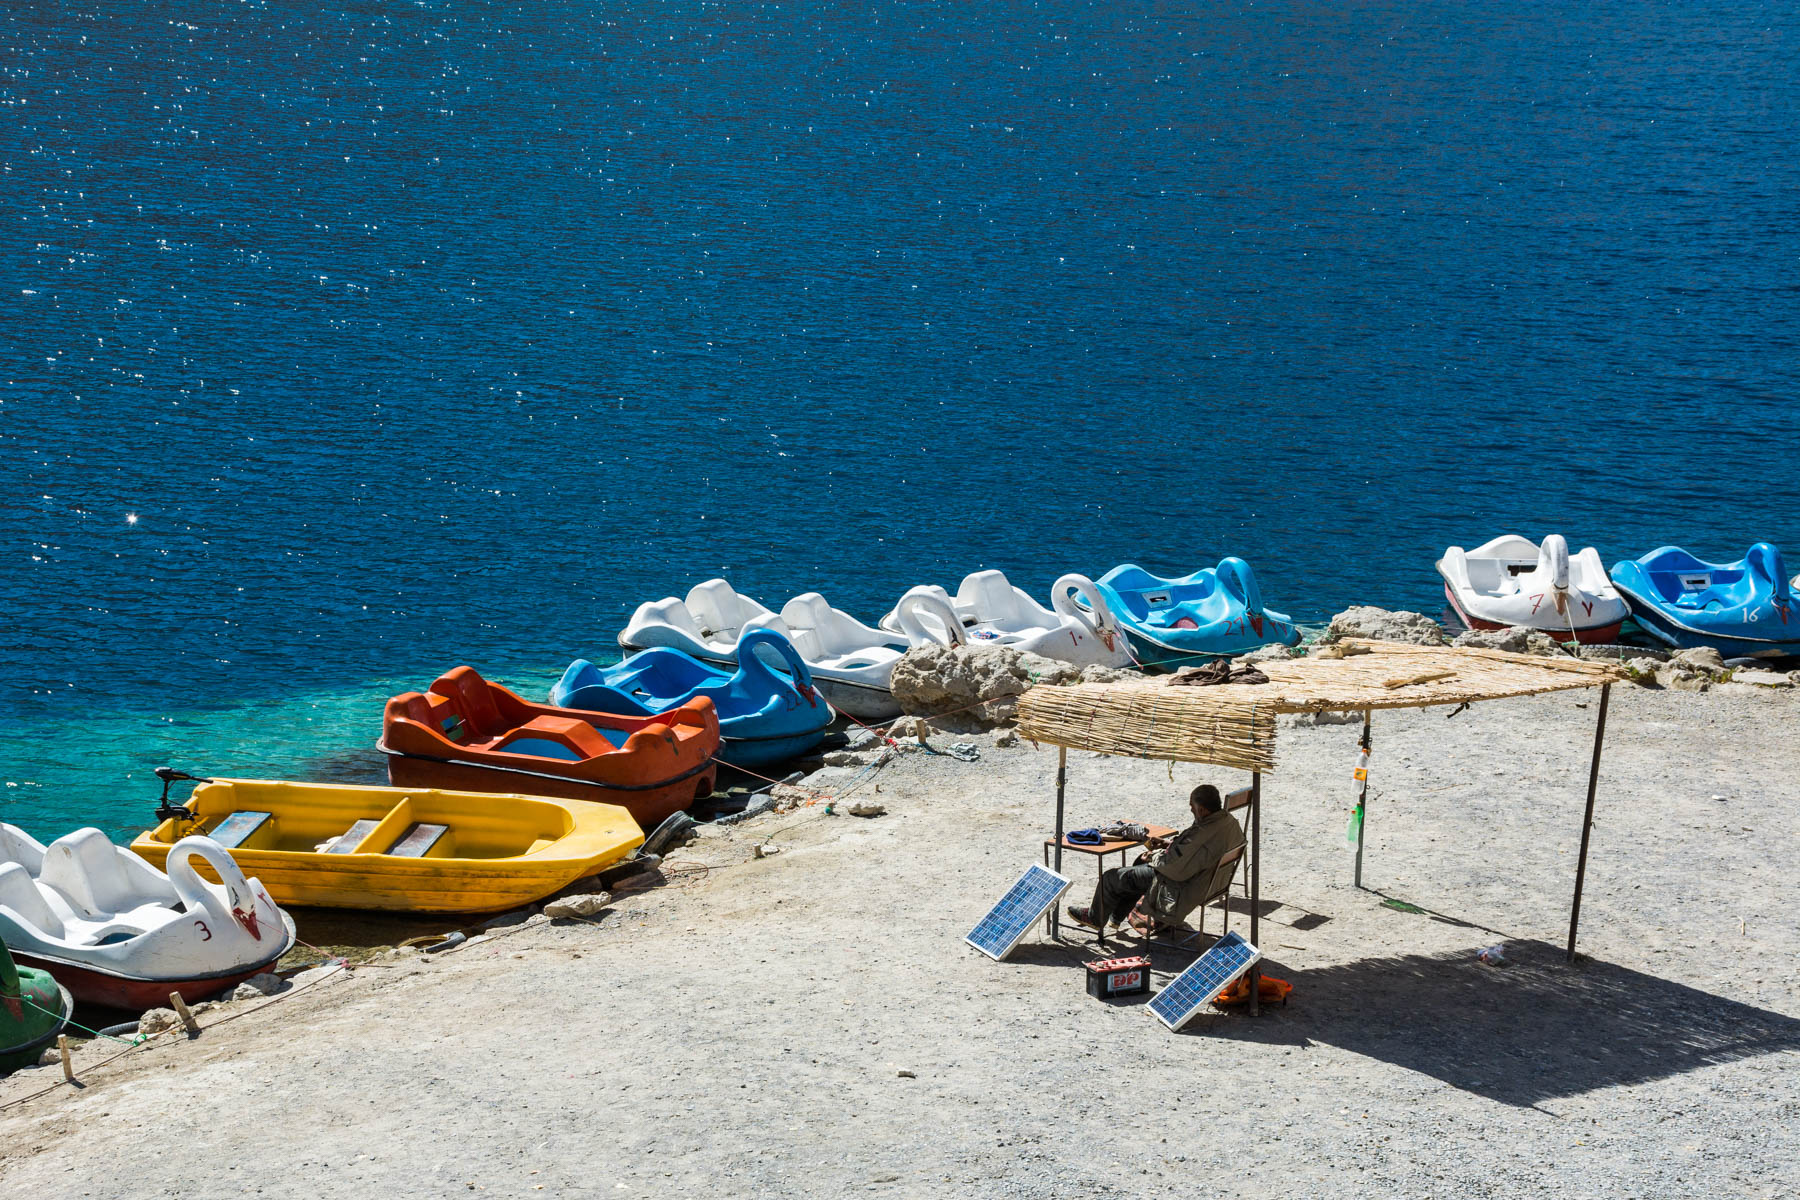 The famous swan paddle boats of Band-e-Amir, Afghanistan